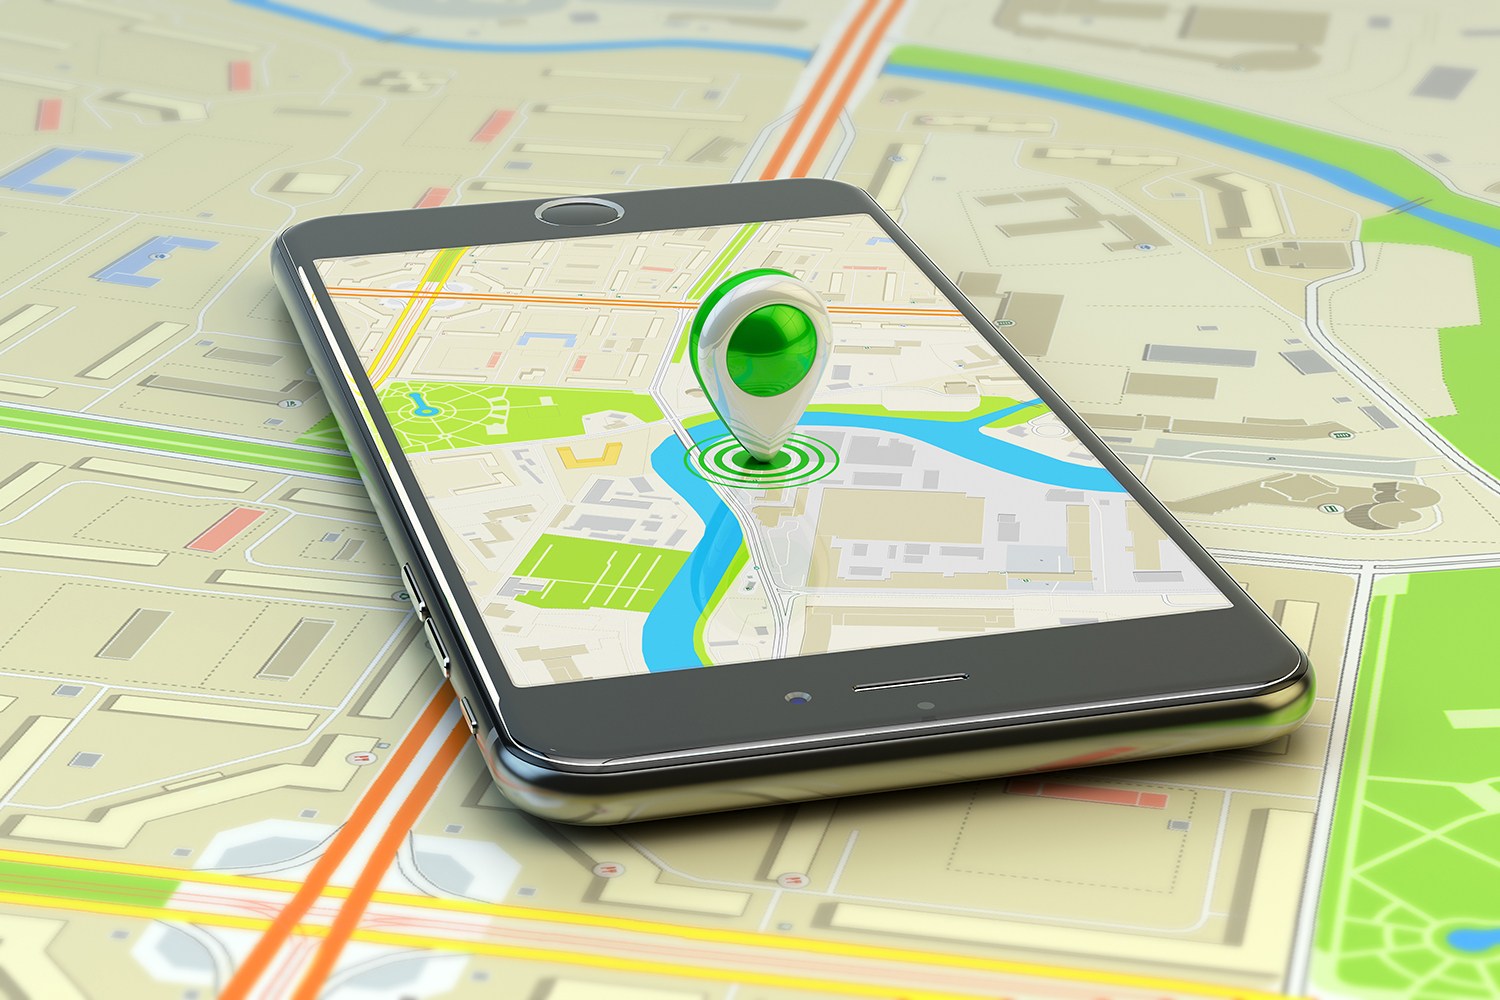 How to Find Your Lost Android Smartphone and Erase Data Remotely